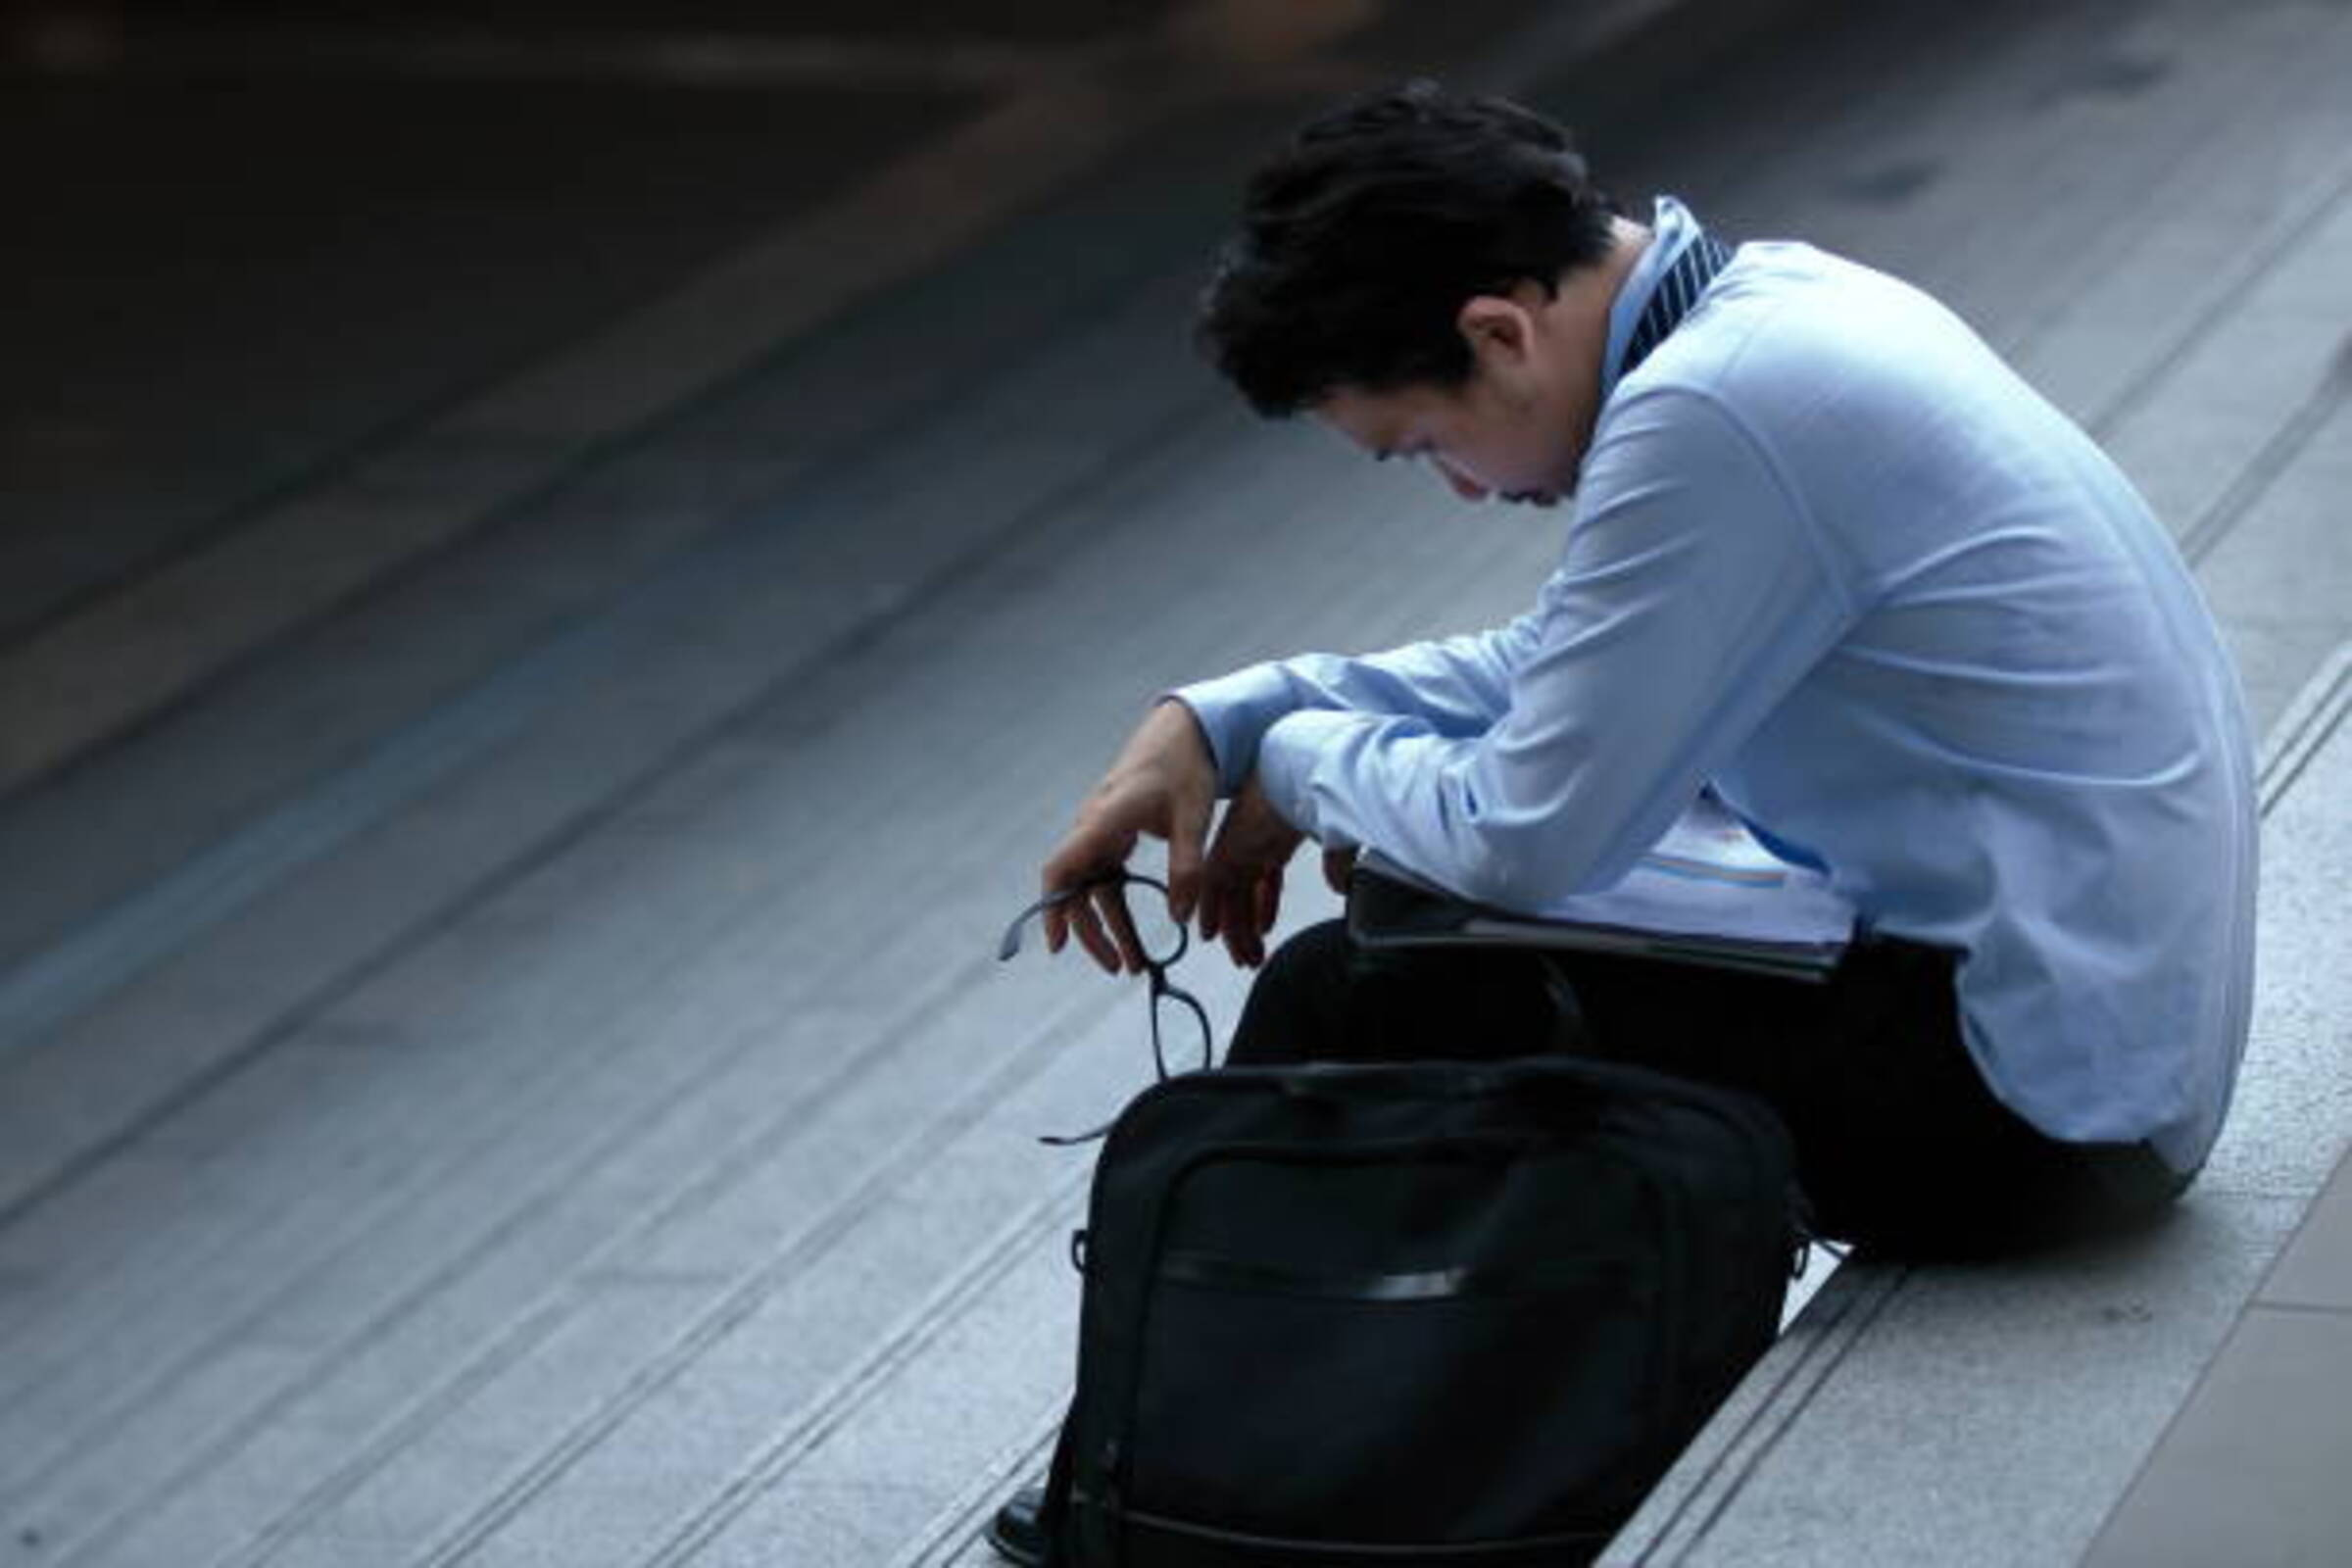 Unemployment causes anxiety and depression.